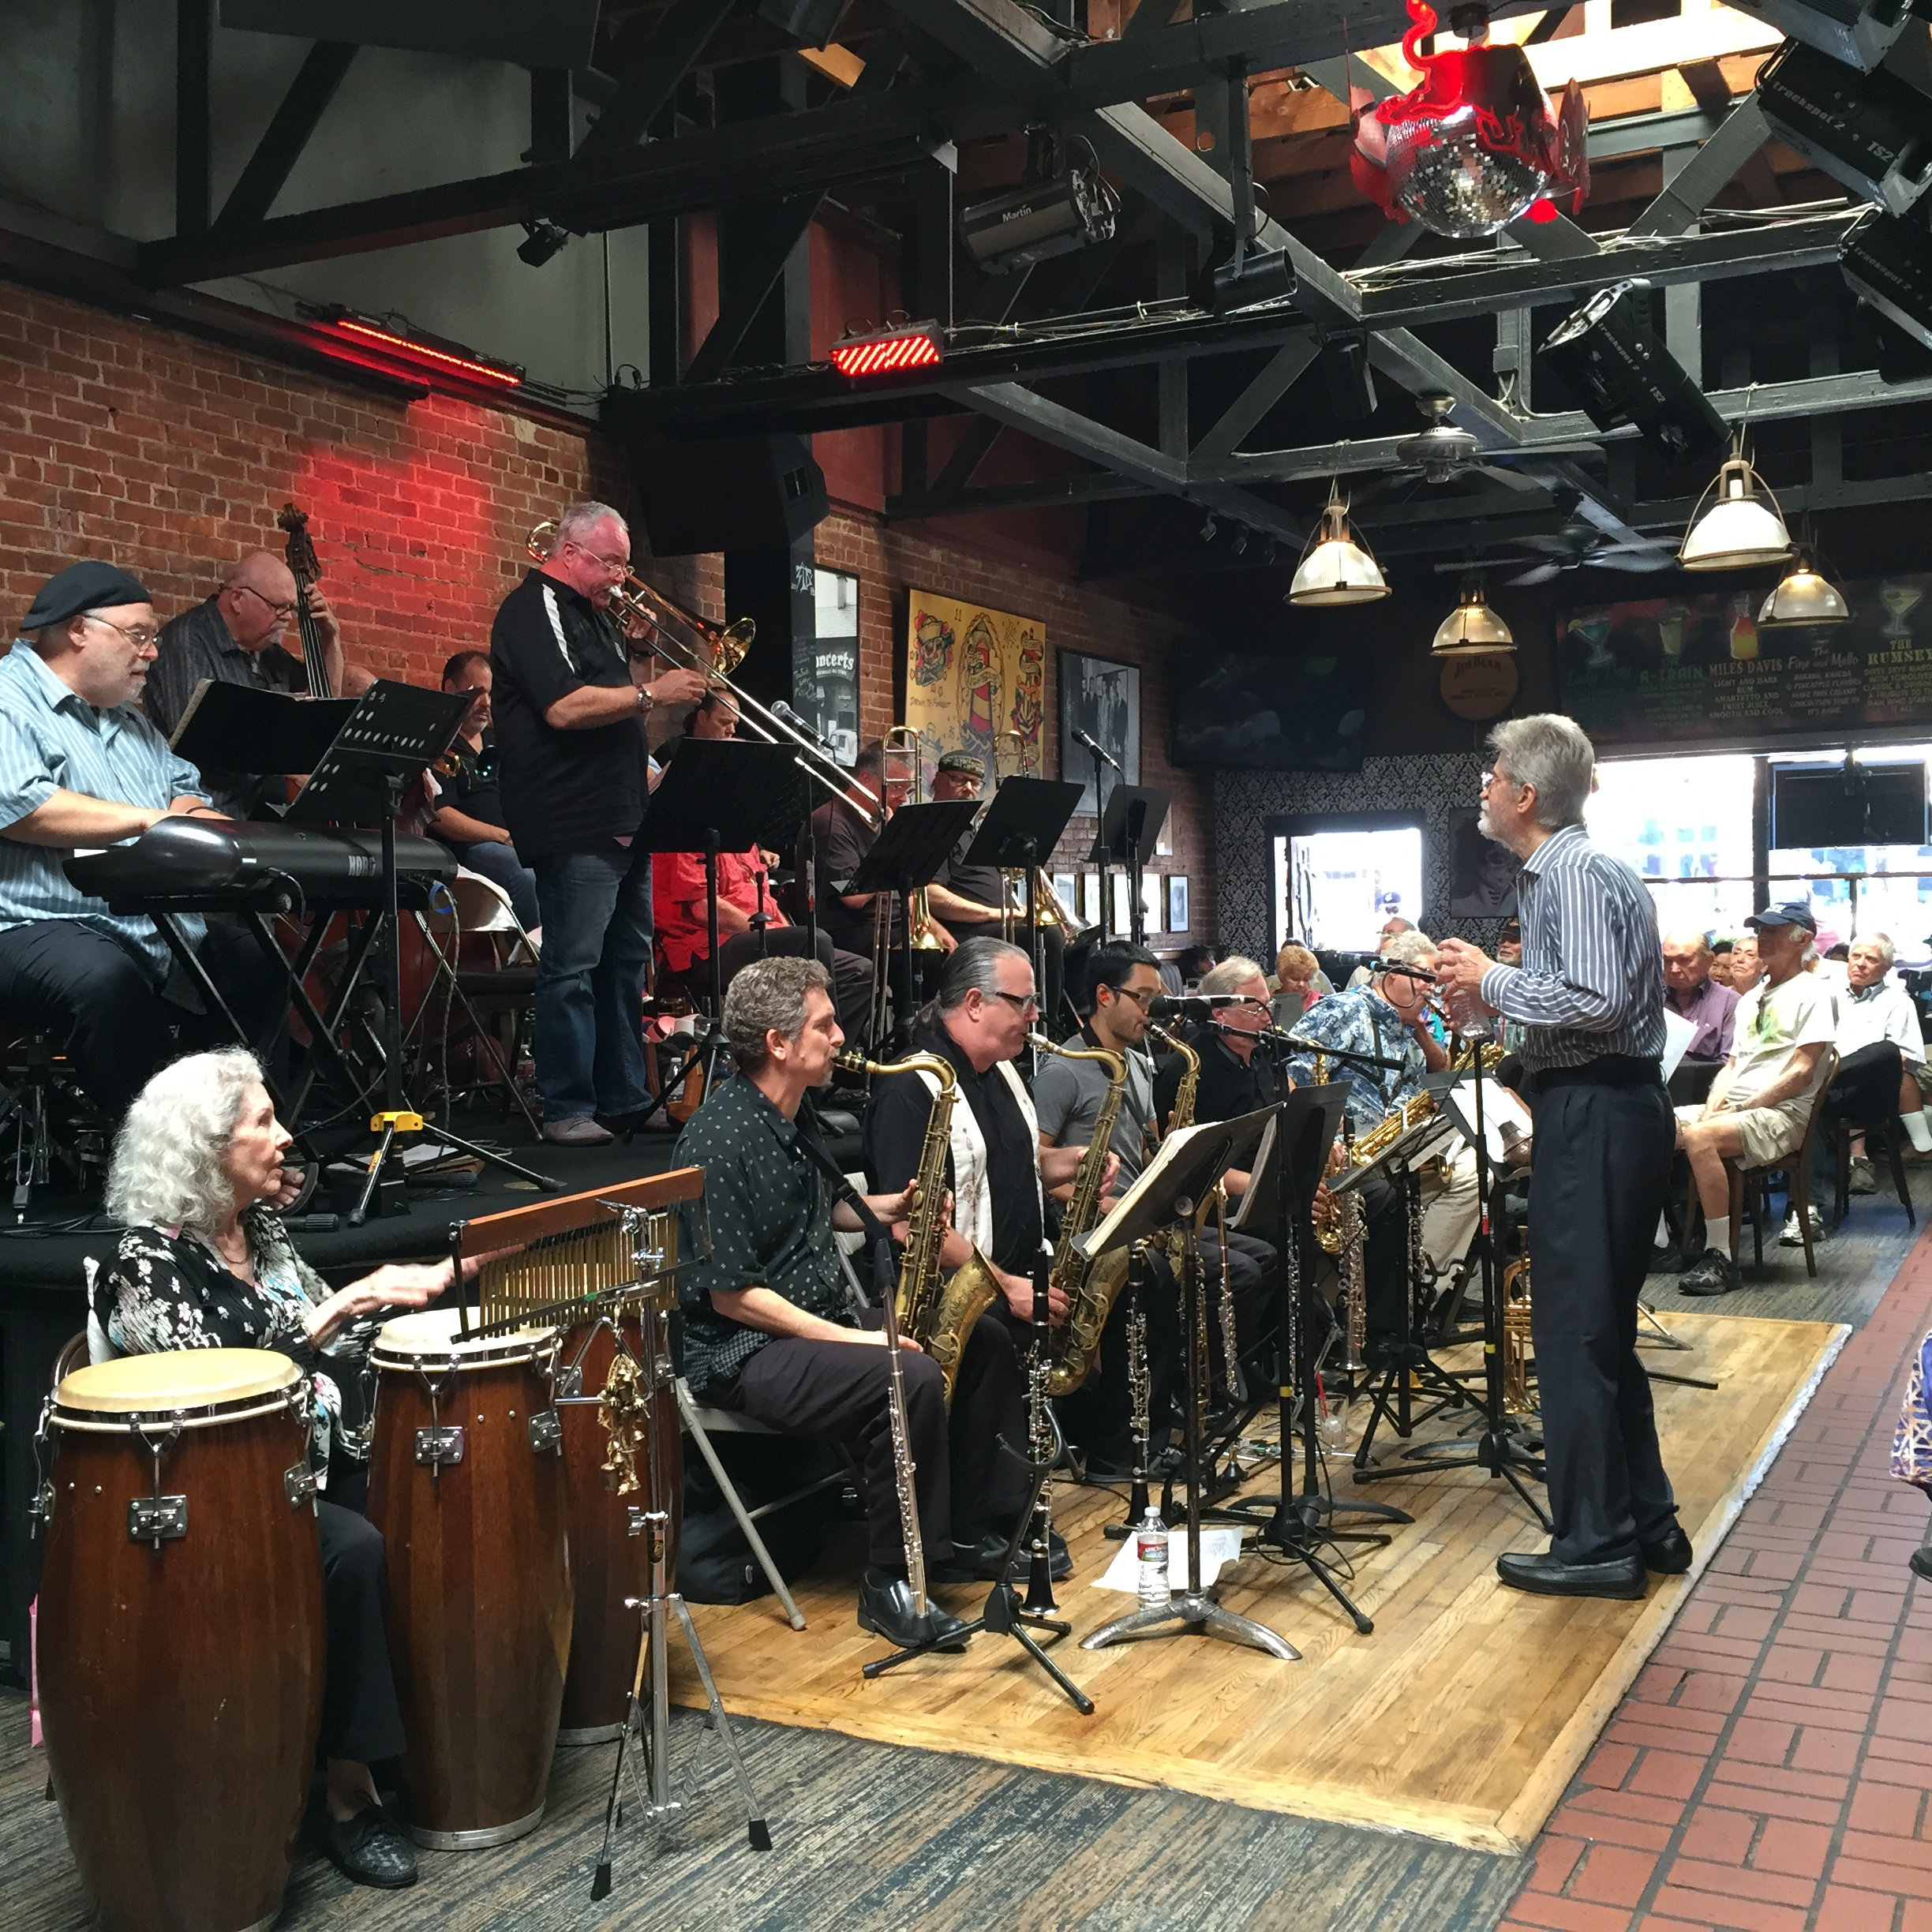 Steve Huffsteter Big Band at the world famous Lighthouse Cafe-Hermosa Beach, CA August 2015